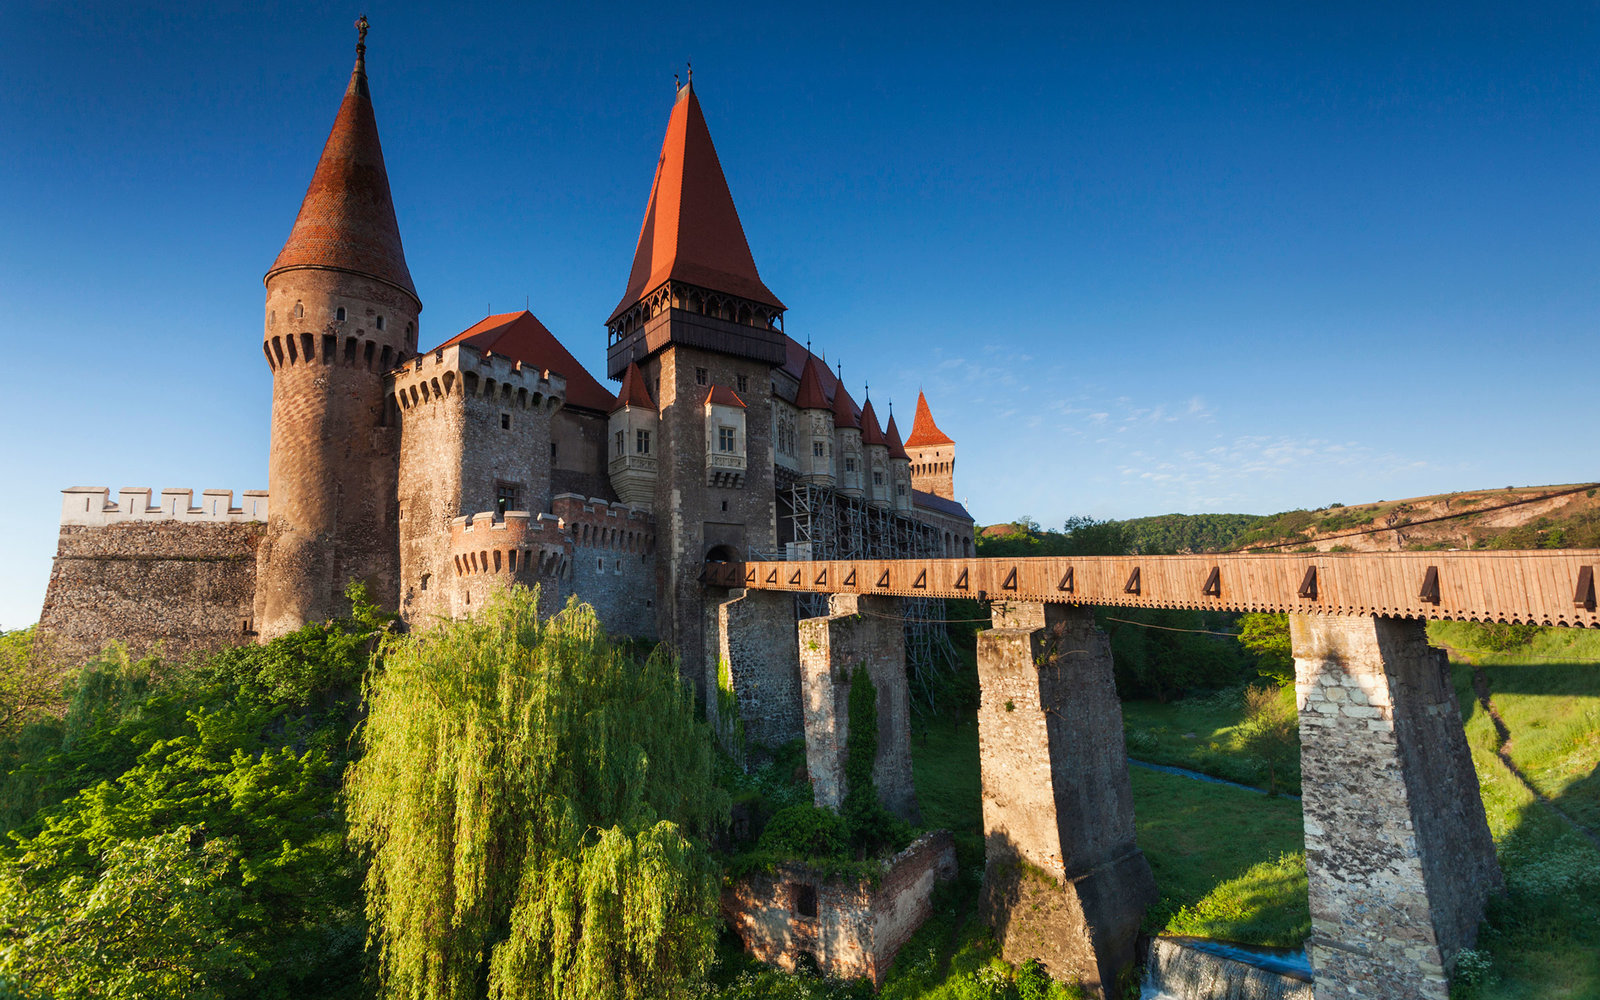 the medieval castle The top 100 of medieval castles in europe and asia more than 10000 medieval castles can be found topcastlescom selected the most beautiful and interesting castles and ranked them in a top 100 list.